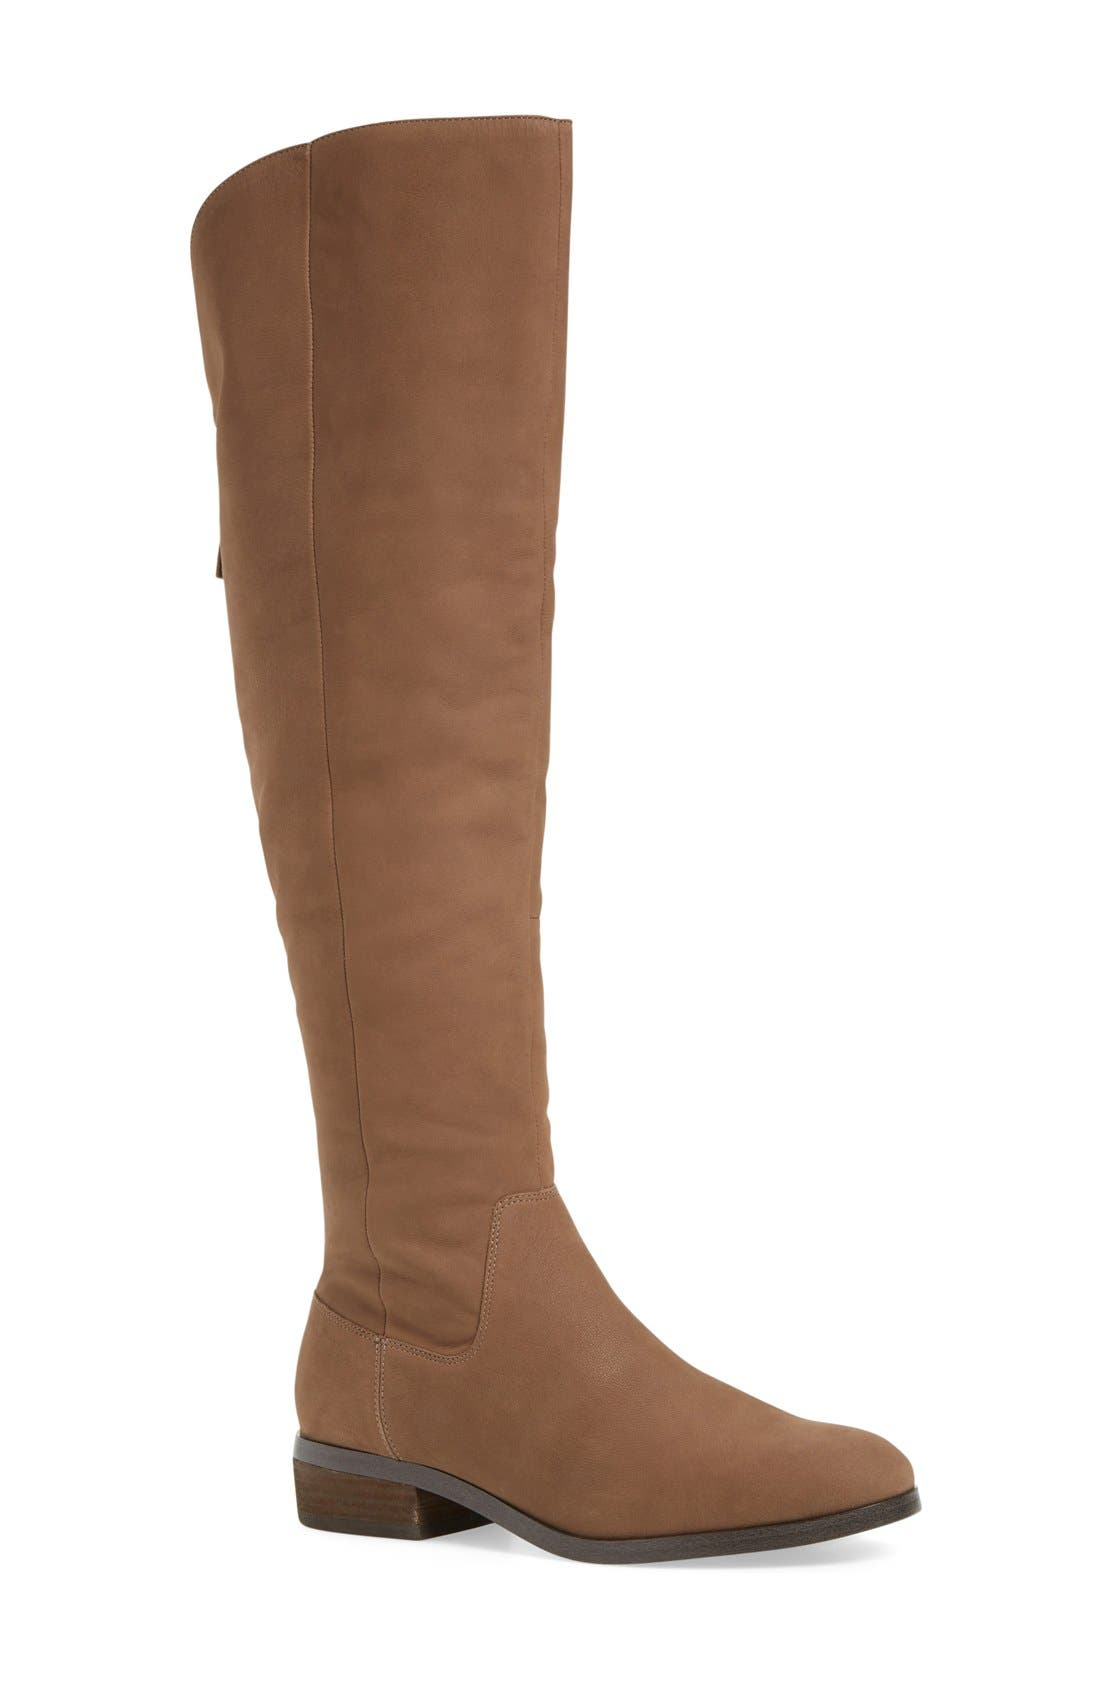 Alternate Image 1 Selected - Sole Society 'Andie' Over the Knee Boot (Women)